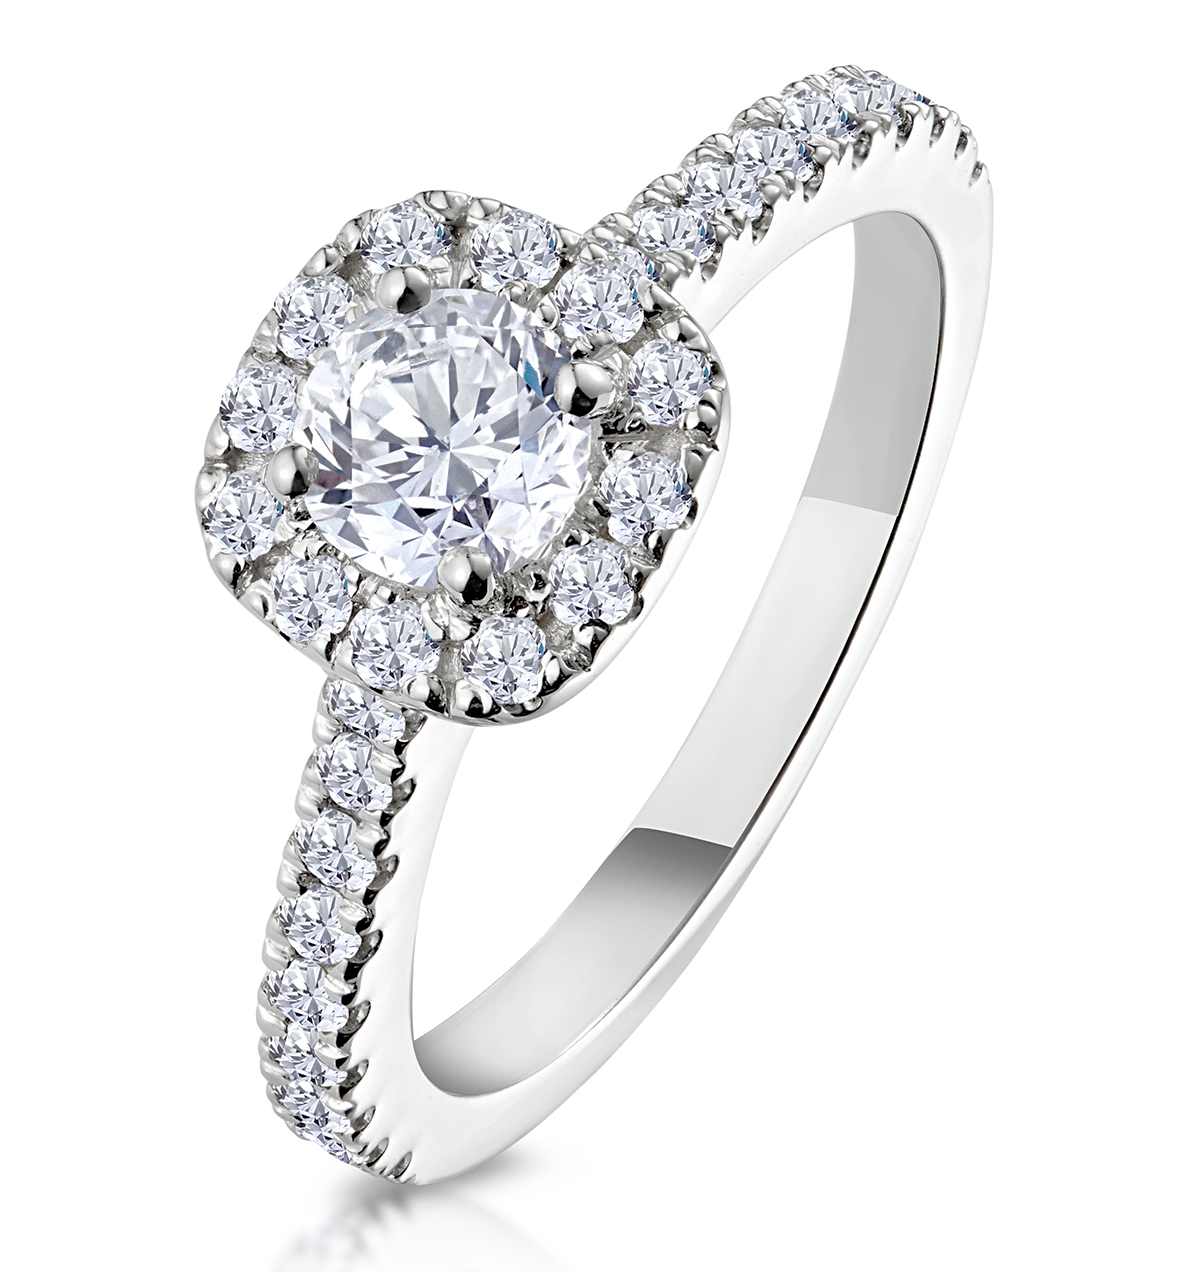 Elizabeth GIA Diamond Halo Engagement Ring in Platinum 1.00ct G/VS2 - image 1